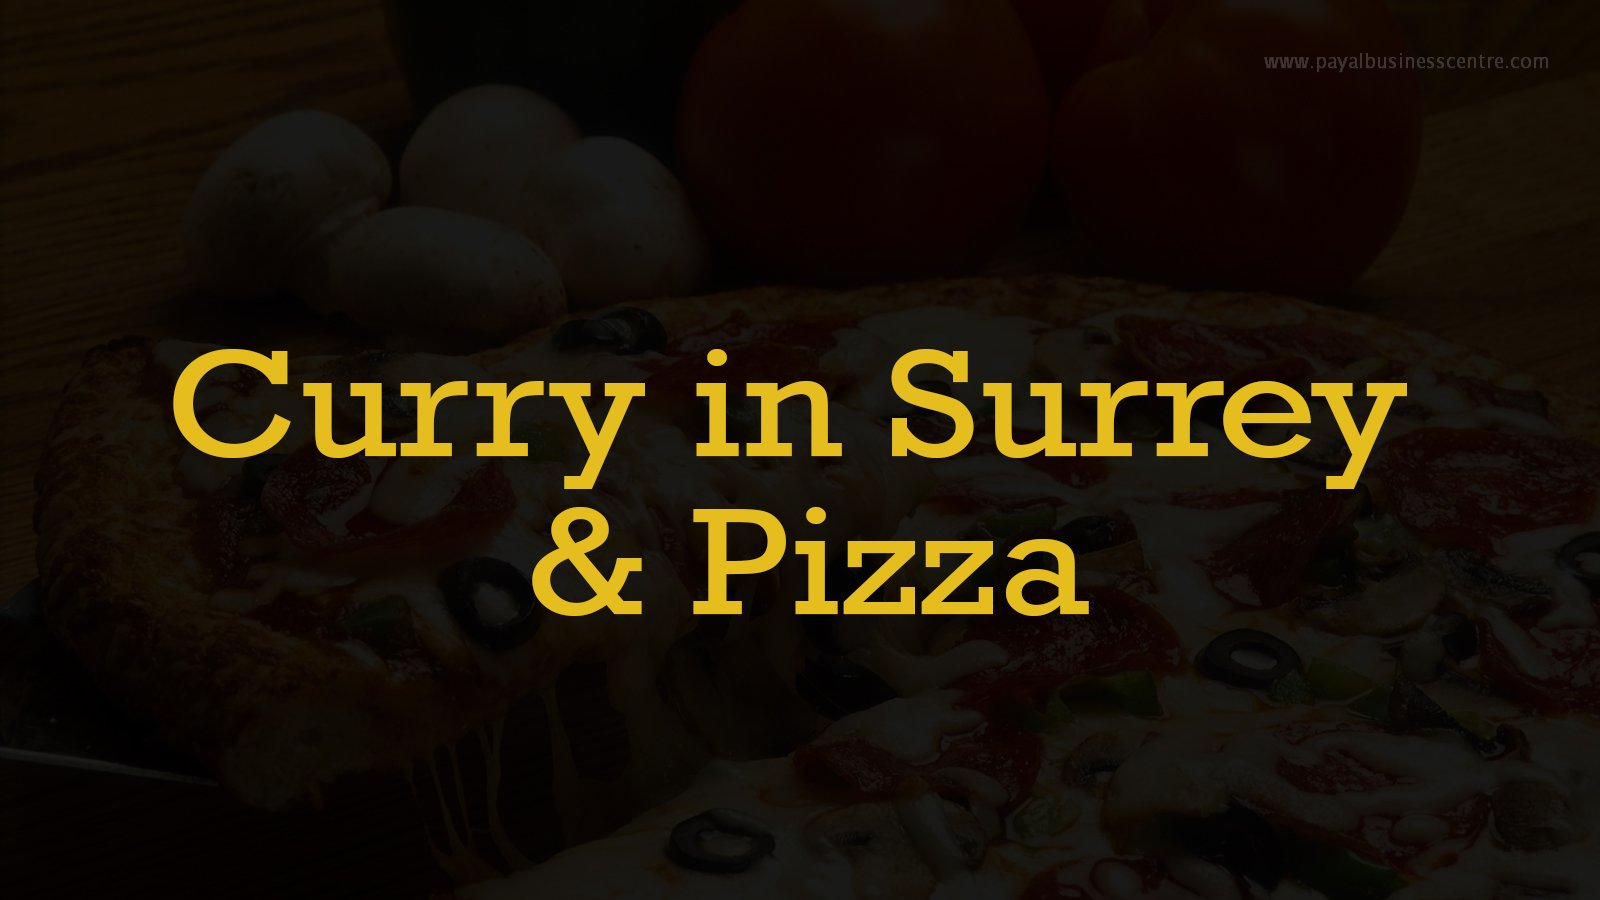 Curry in Surrey & Pizza